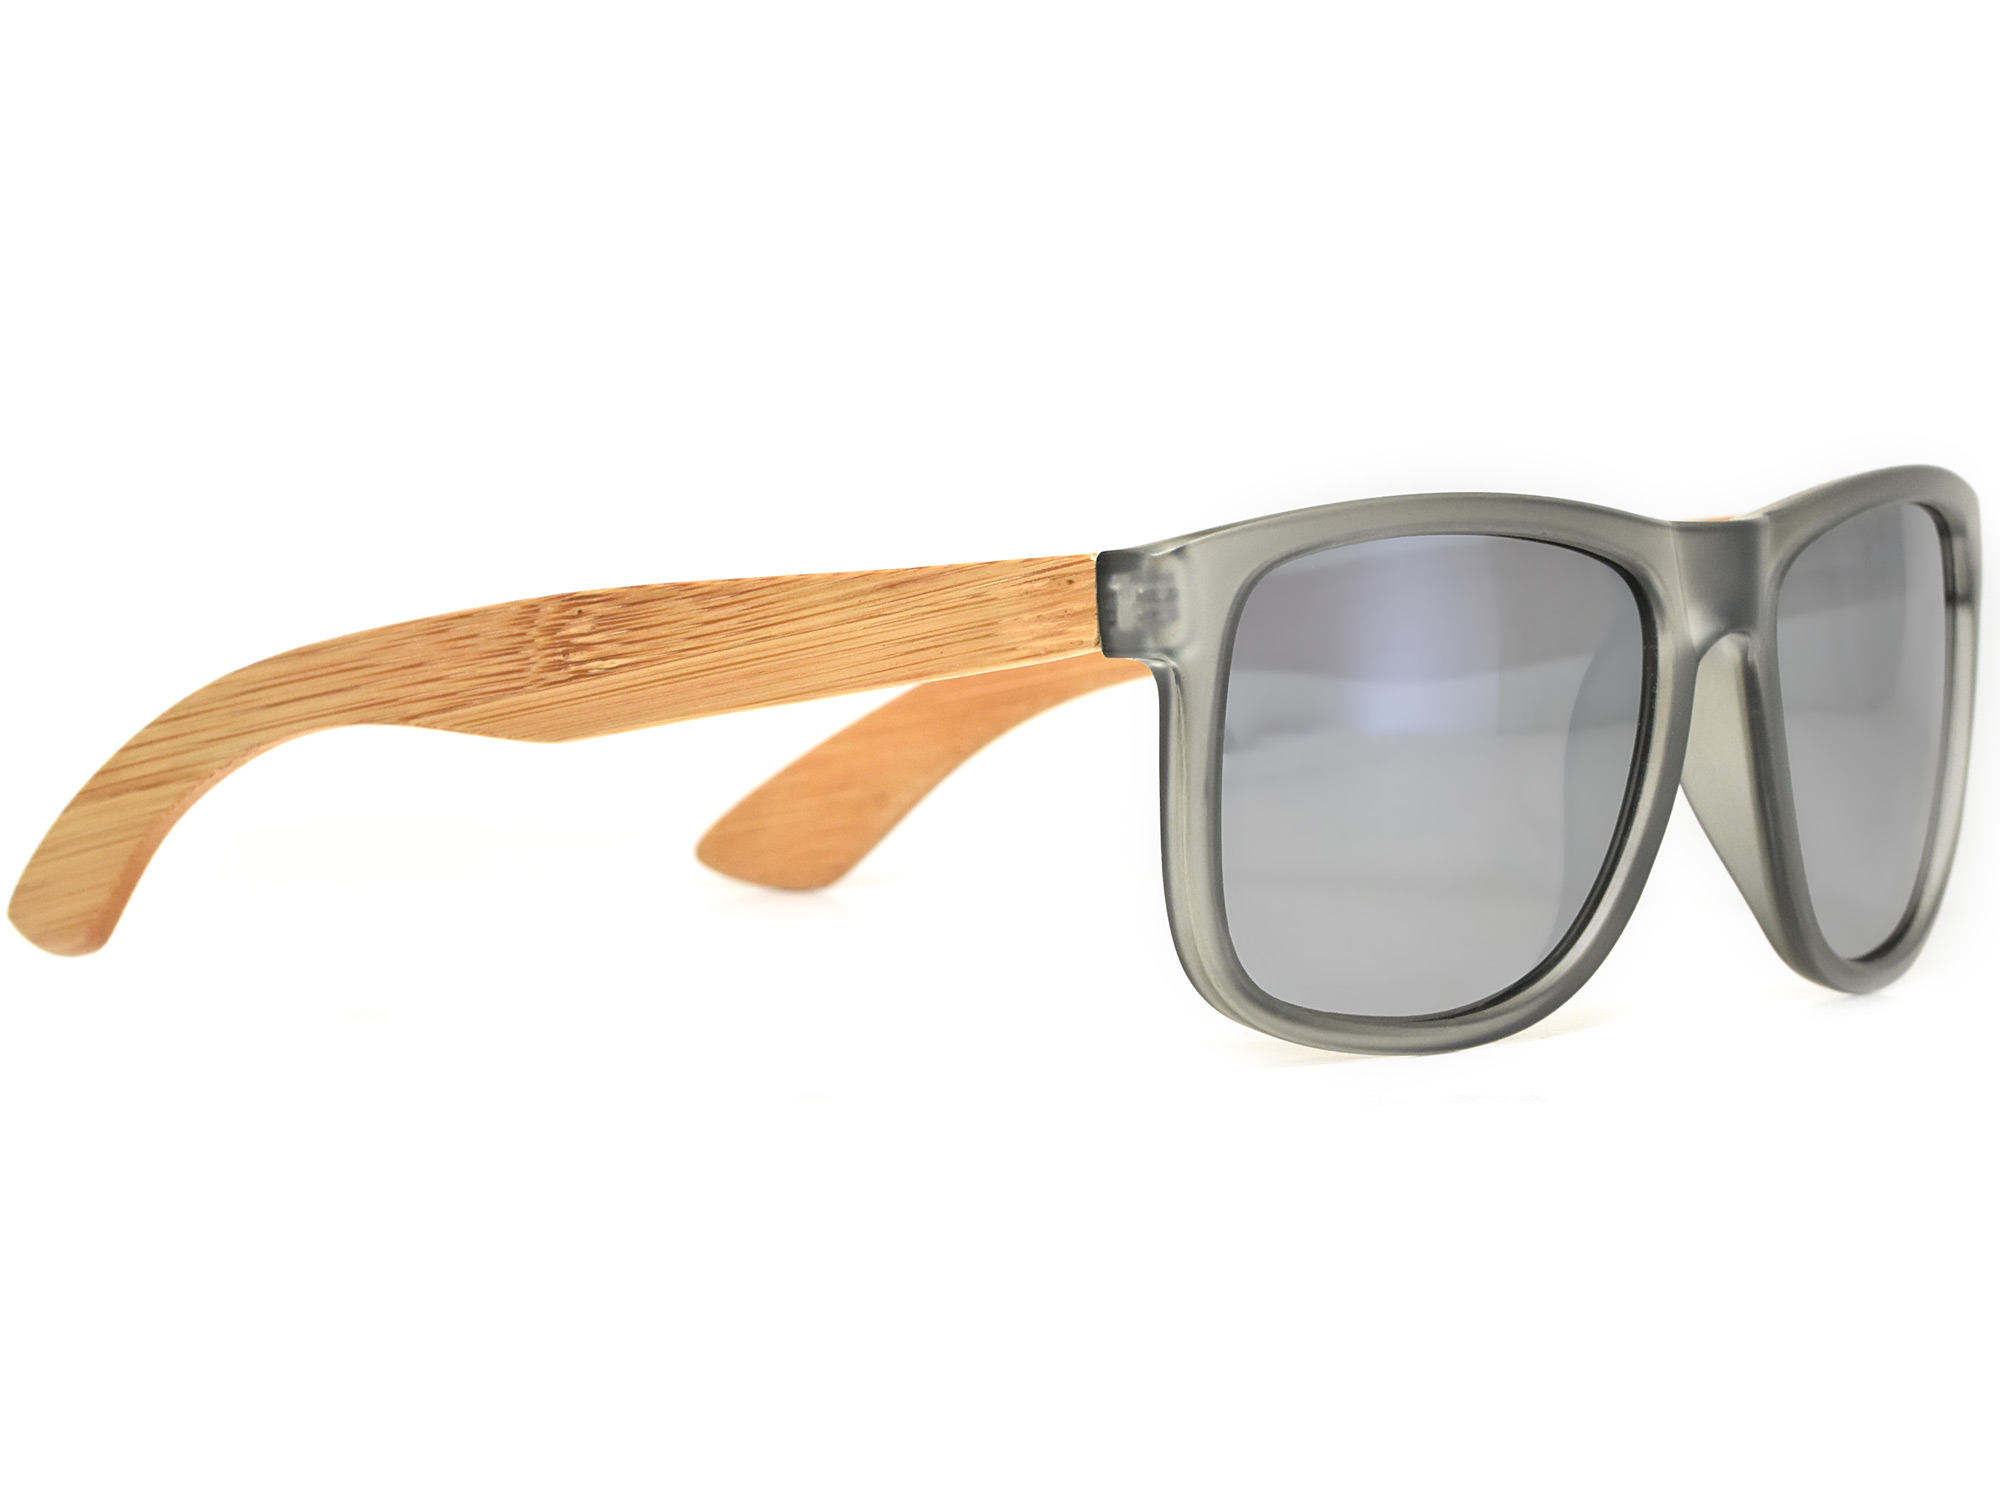 Square bamboo wood sunglasses with silver mirrored polarized lenses right